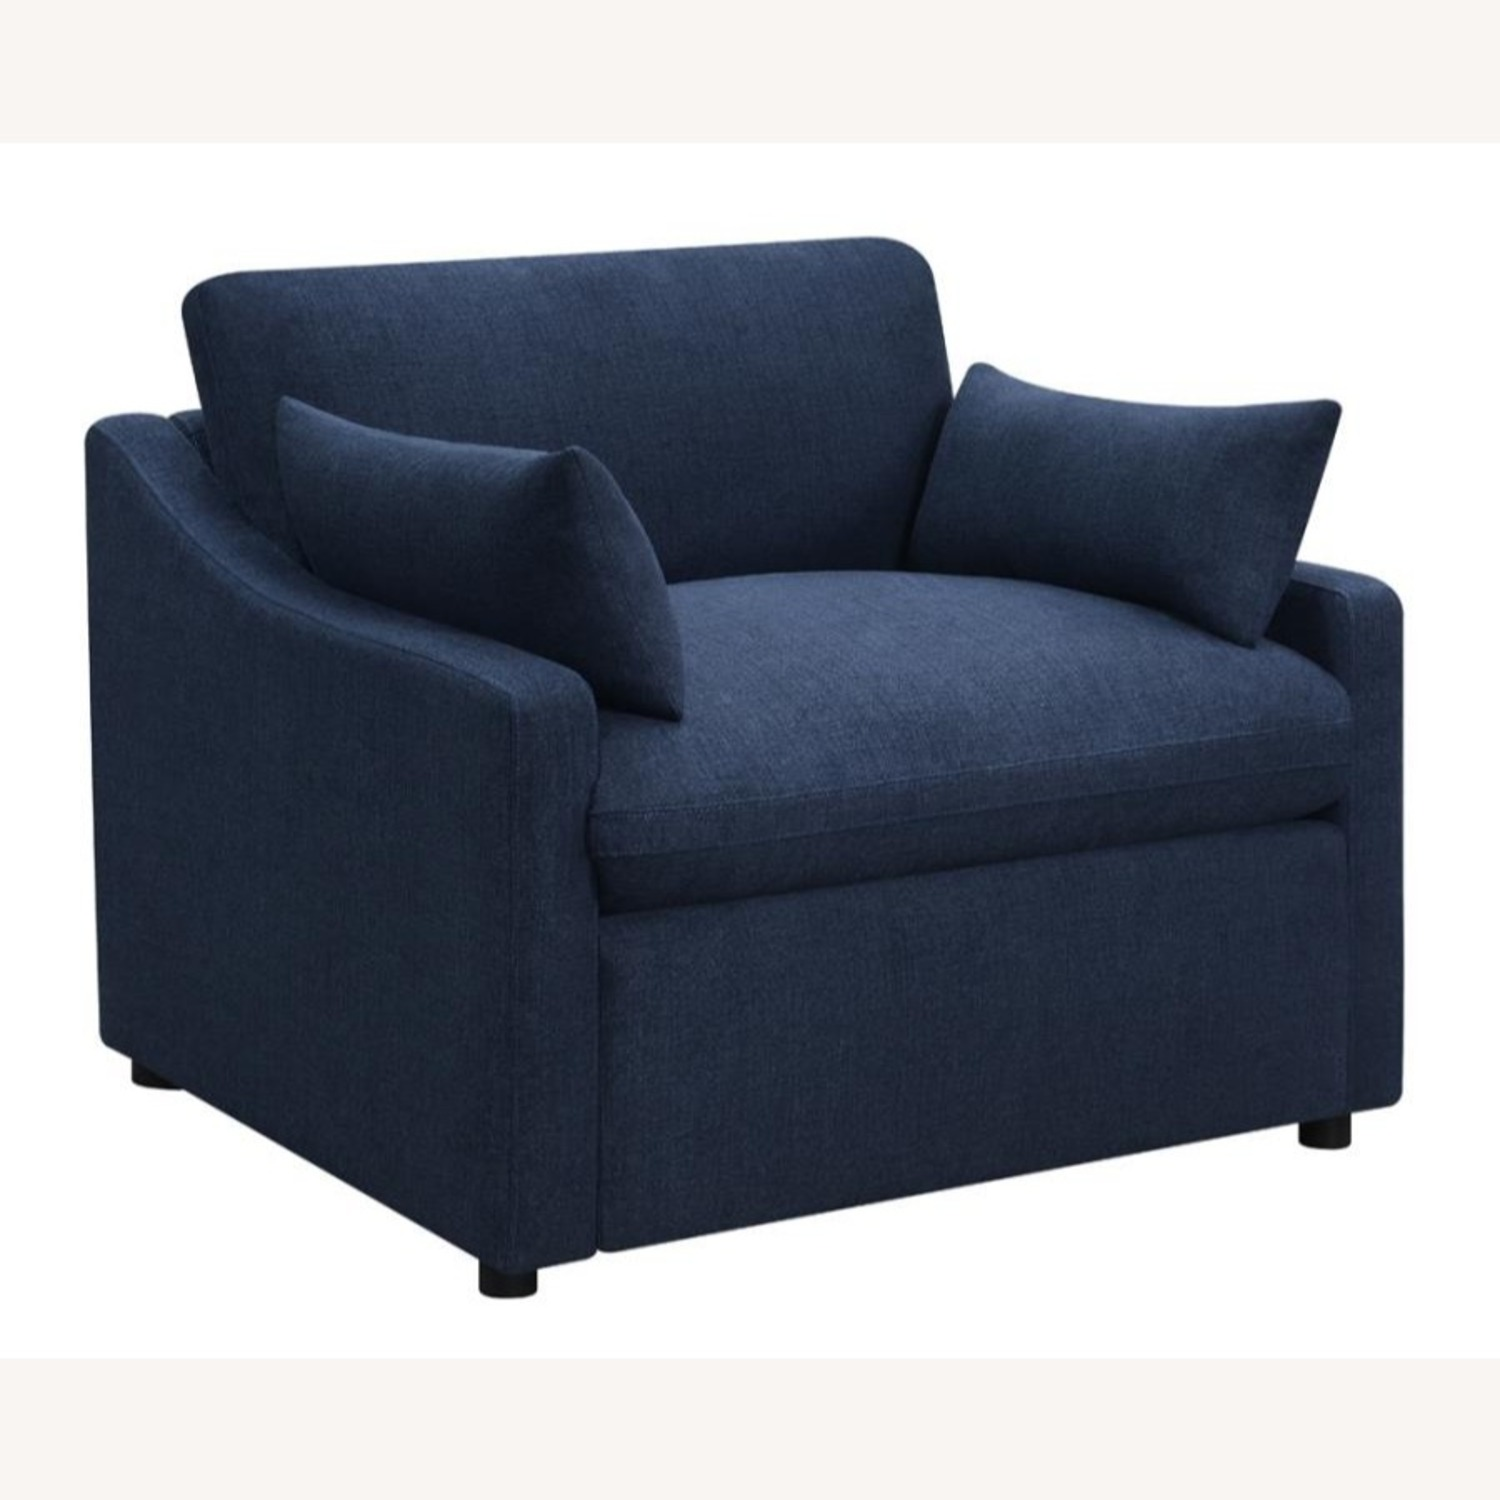 Power Recliner In Linen-Like Midnight Blue Fabric - image-0